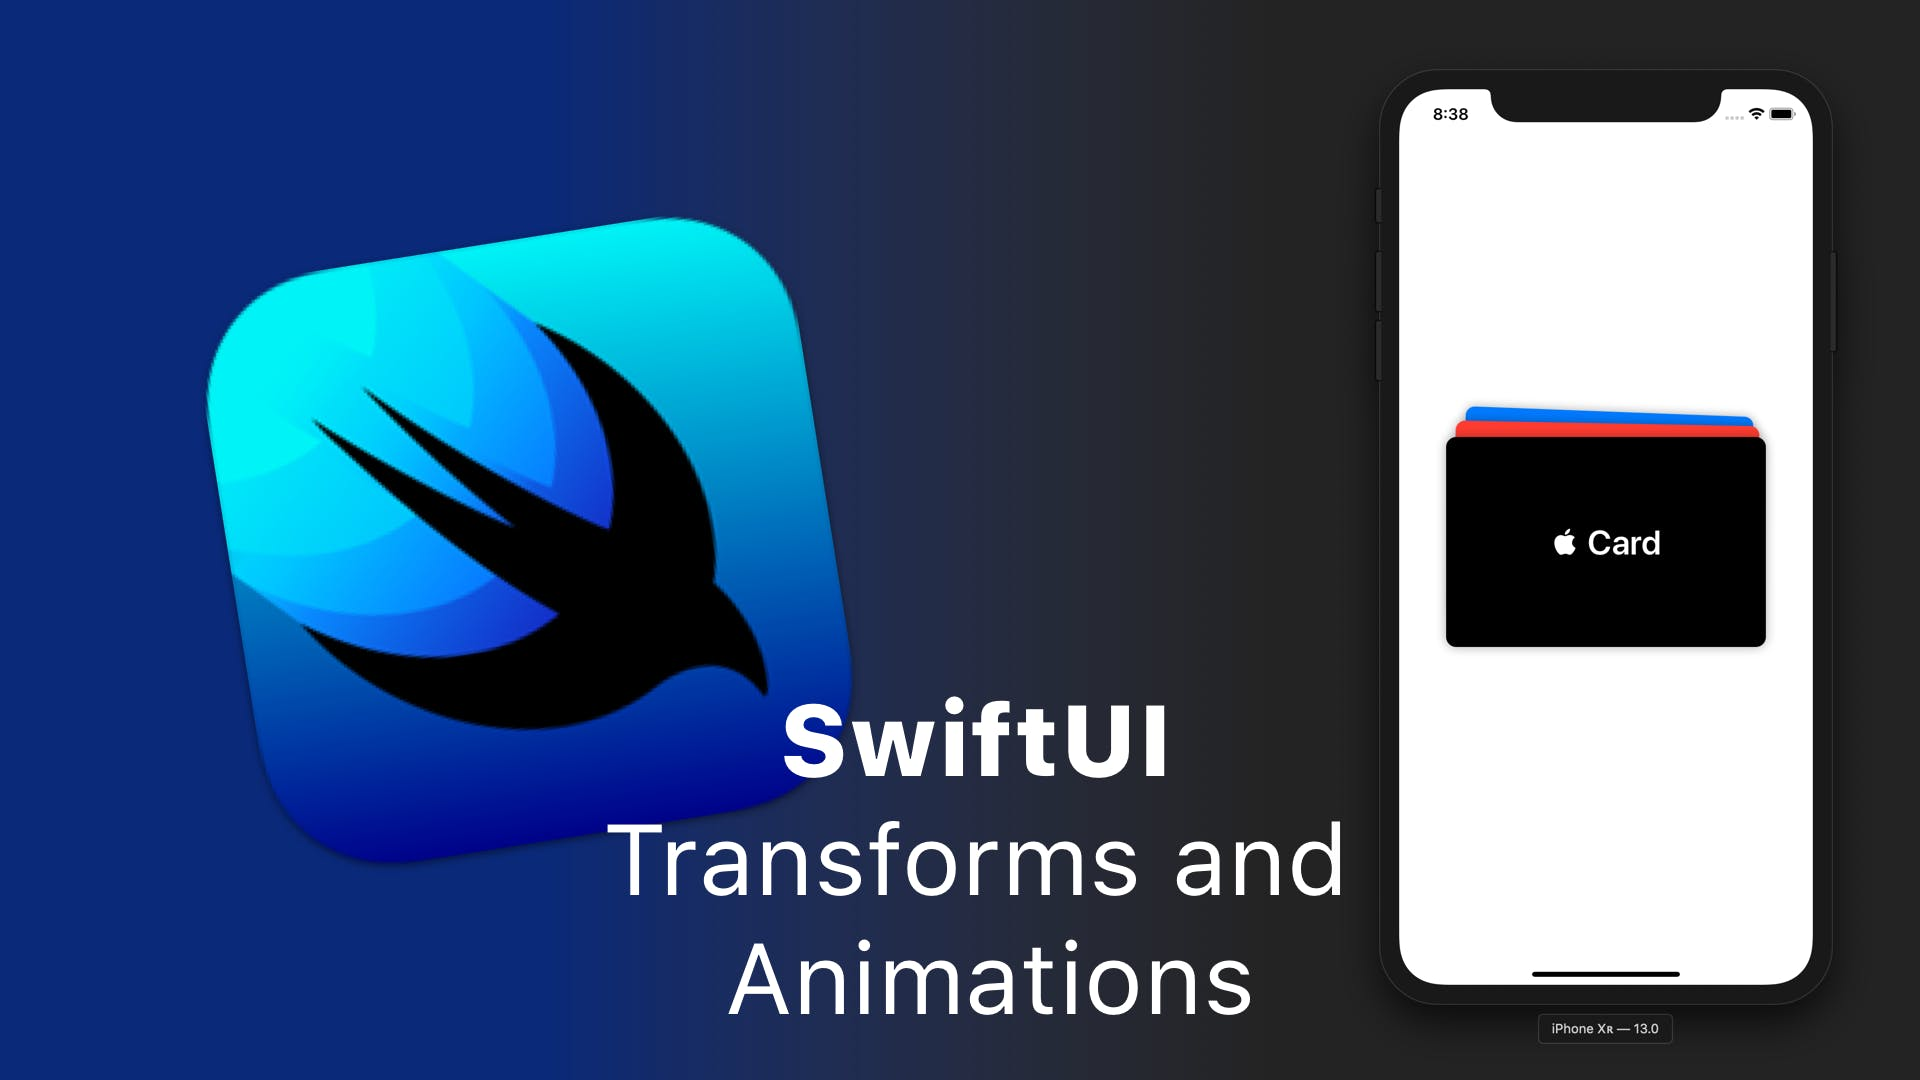 SwiftUI Transforms and Animations